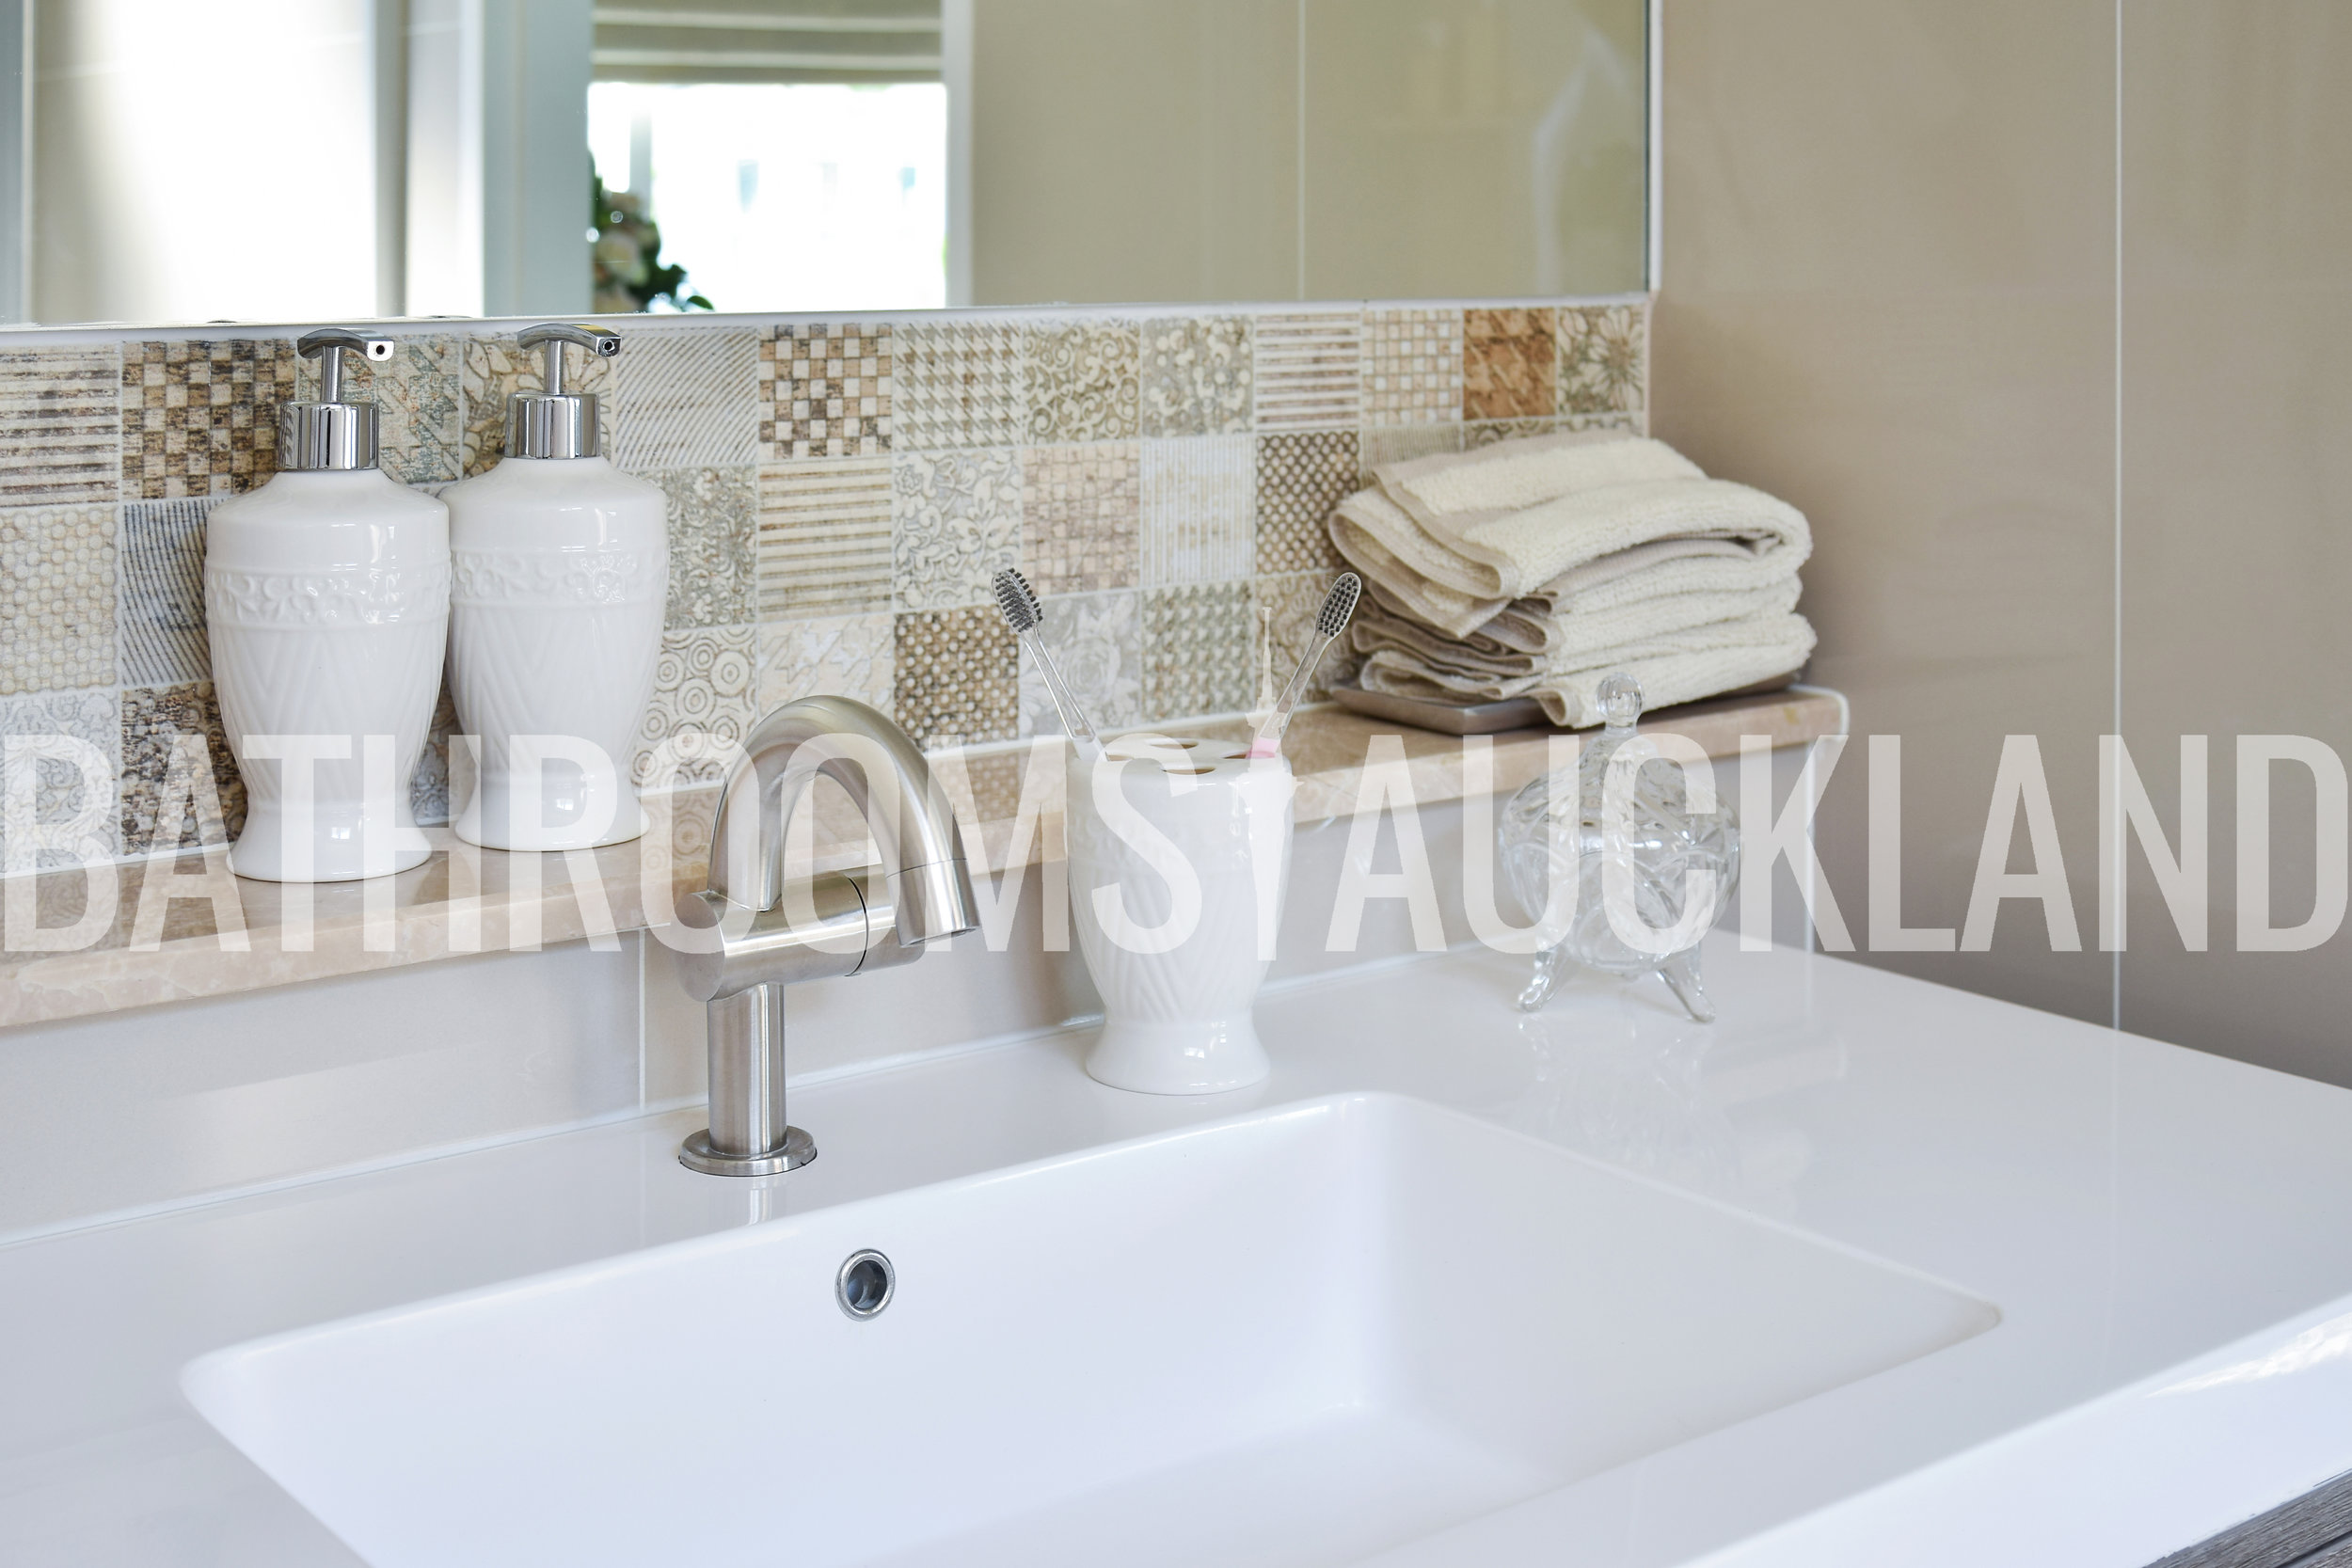 Bathrooms Auckland Renovation_Bathrooms In Auckland_Bathroom Renovation_Bathrooms Renovation_Bathrooms Auckland Renovation .1222.jpg